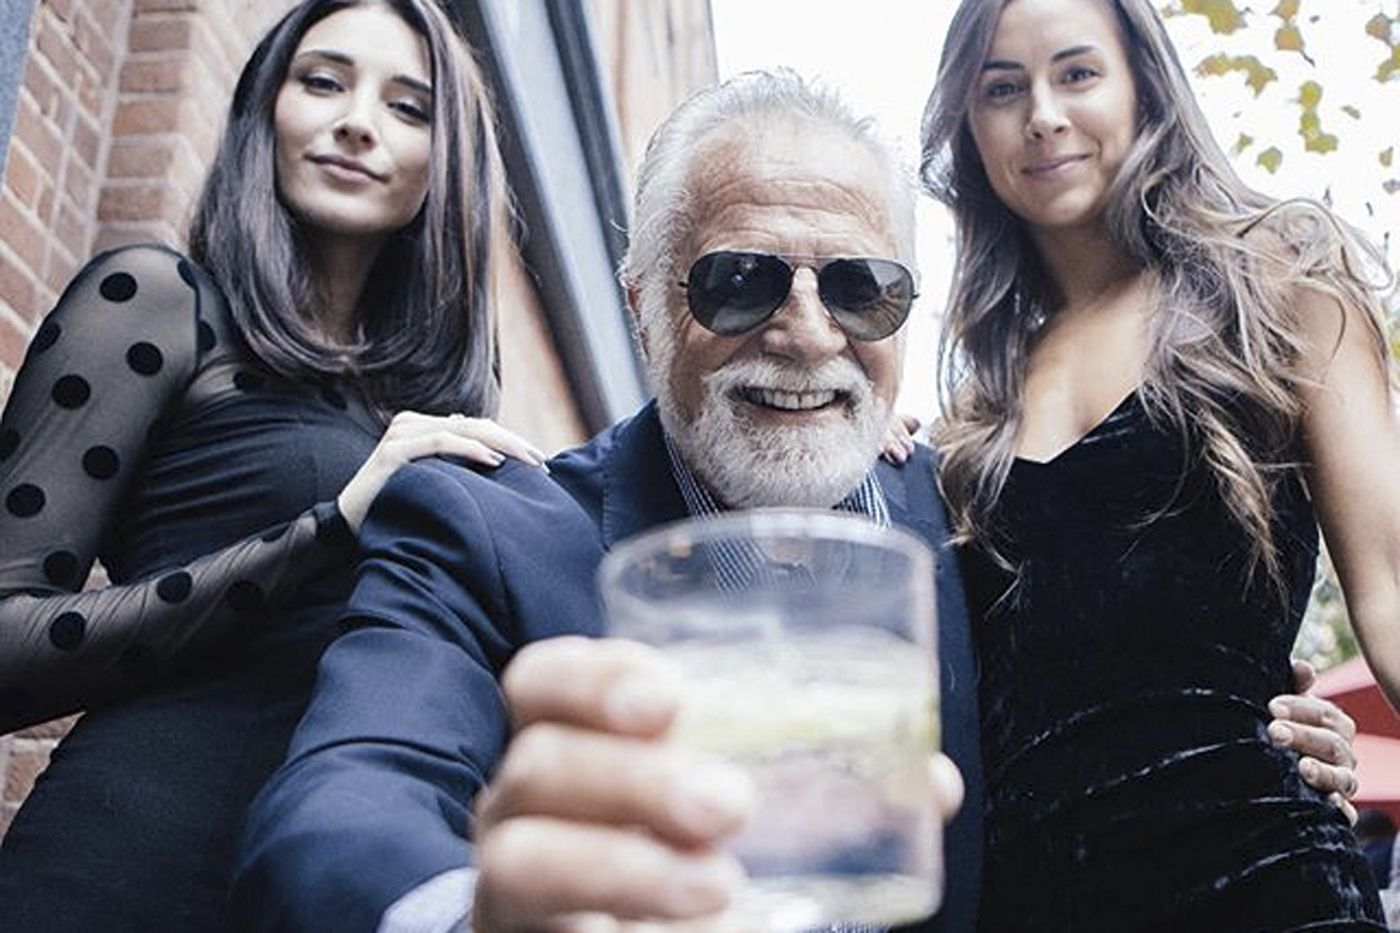 'Most Interesting Man in the World' to sign tequila bottles in Media